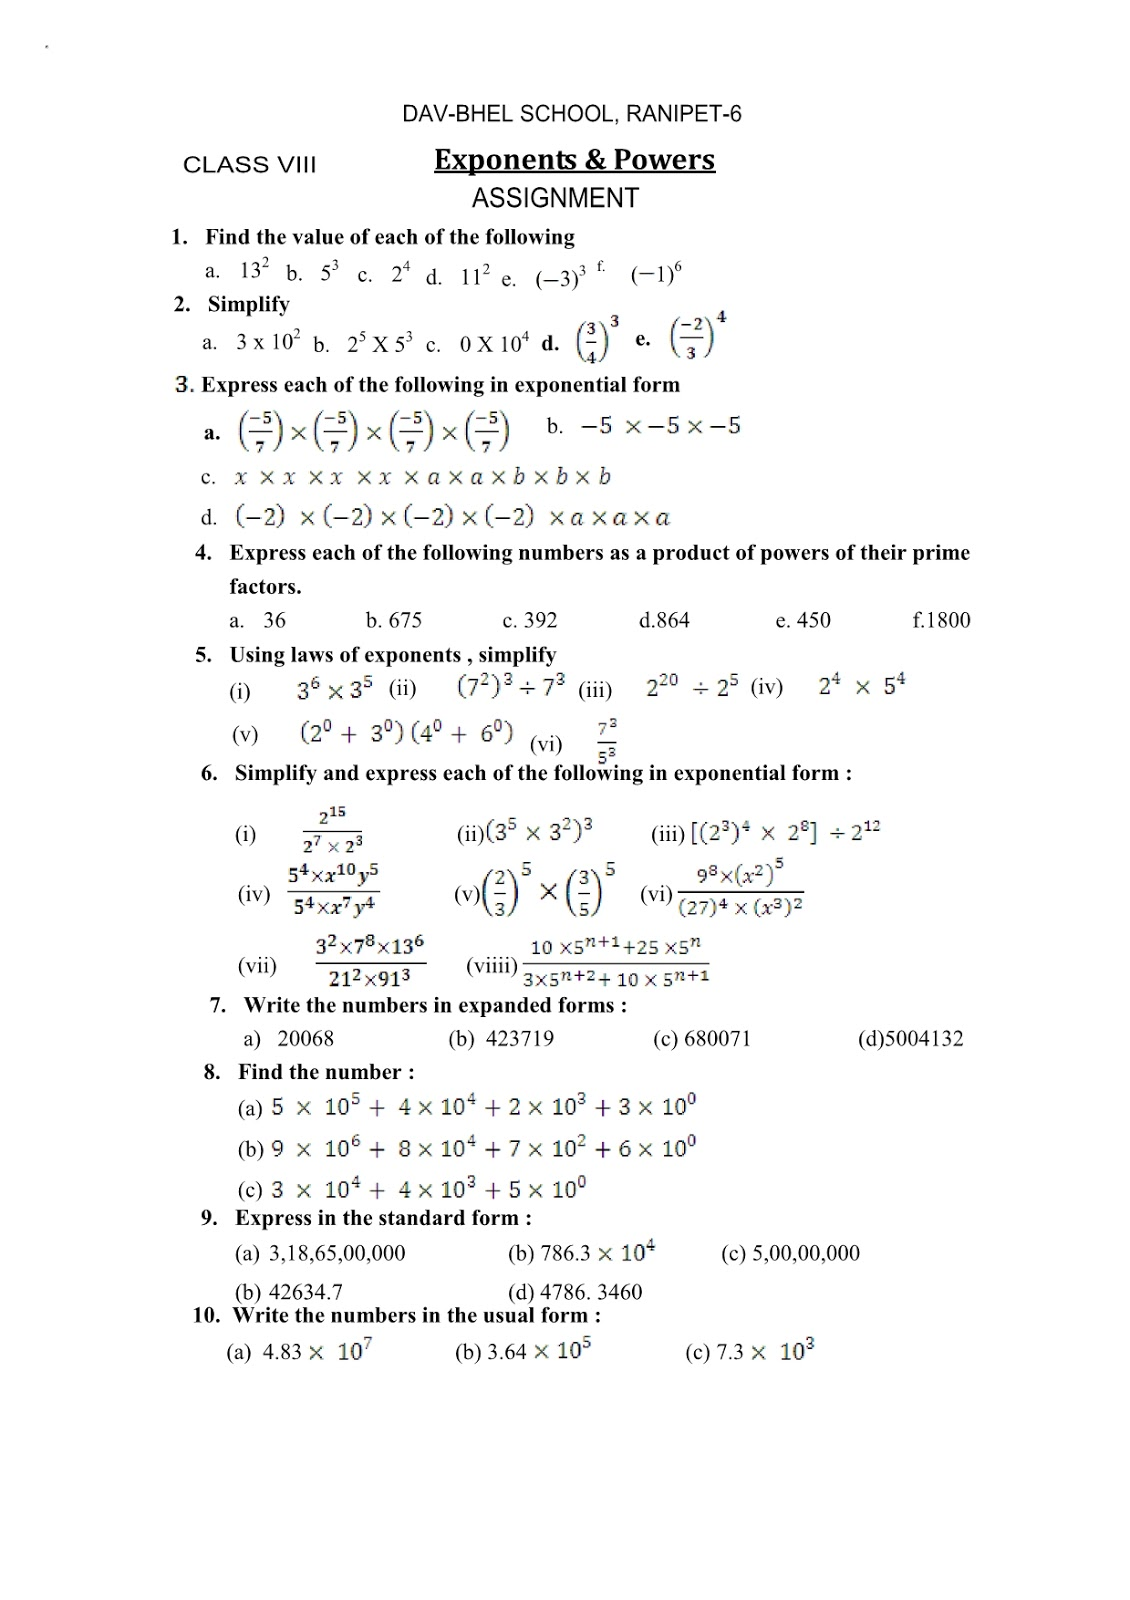 Worksheet Of Exponents For Class 8